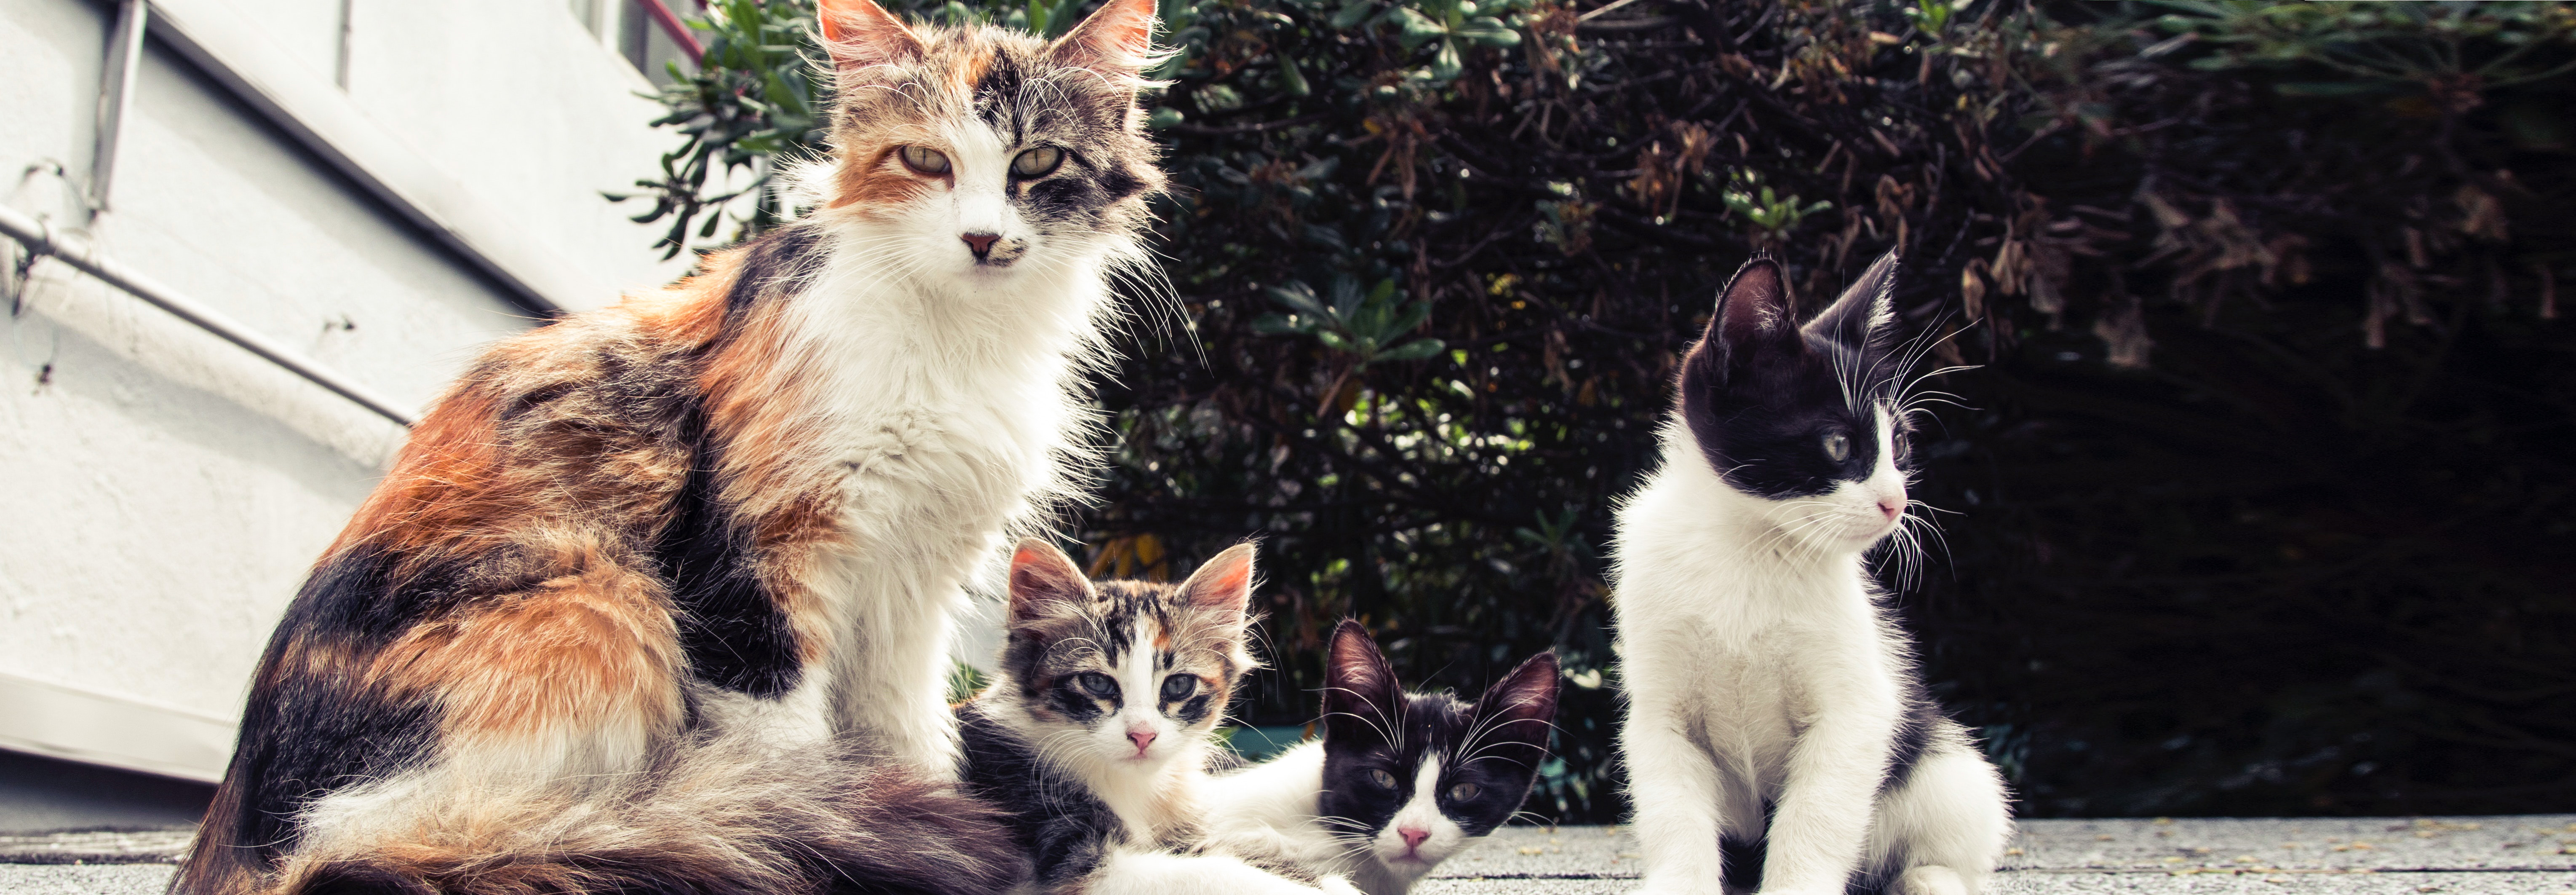 animals-breed-cats-140134 chats errants (small)_edited.jpg